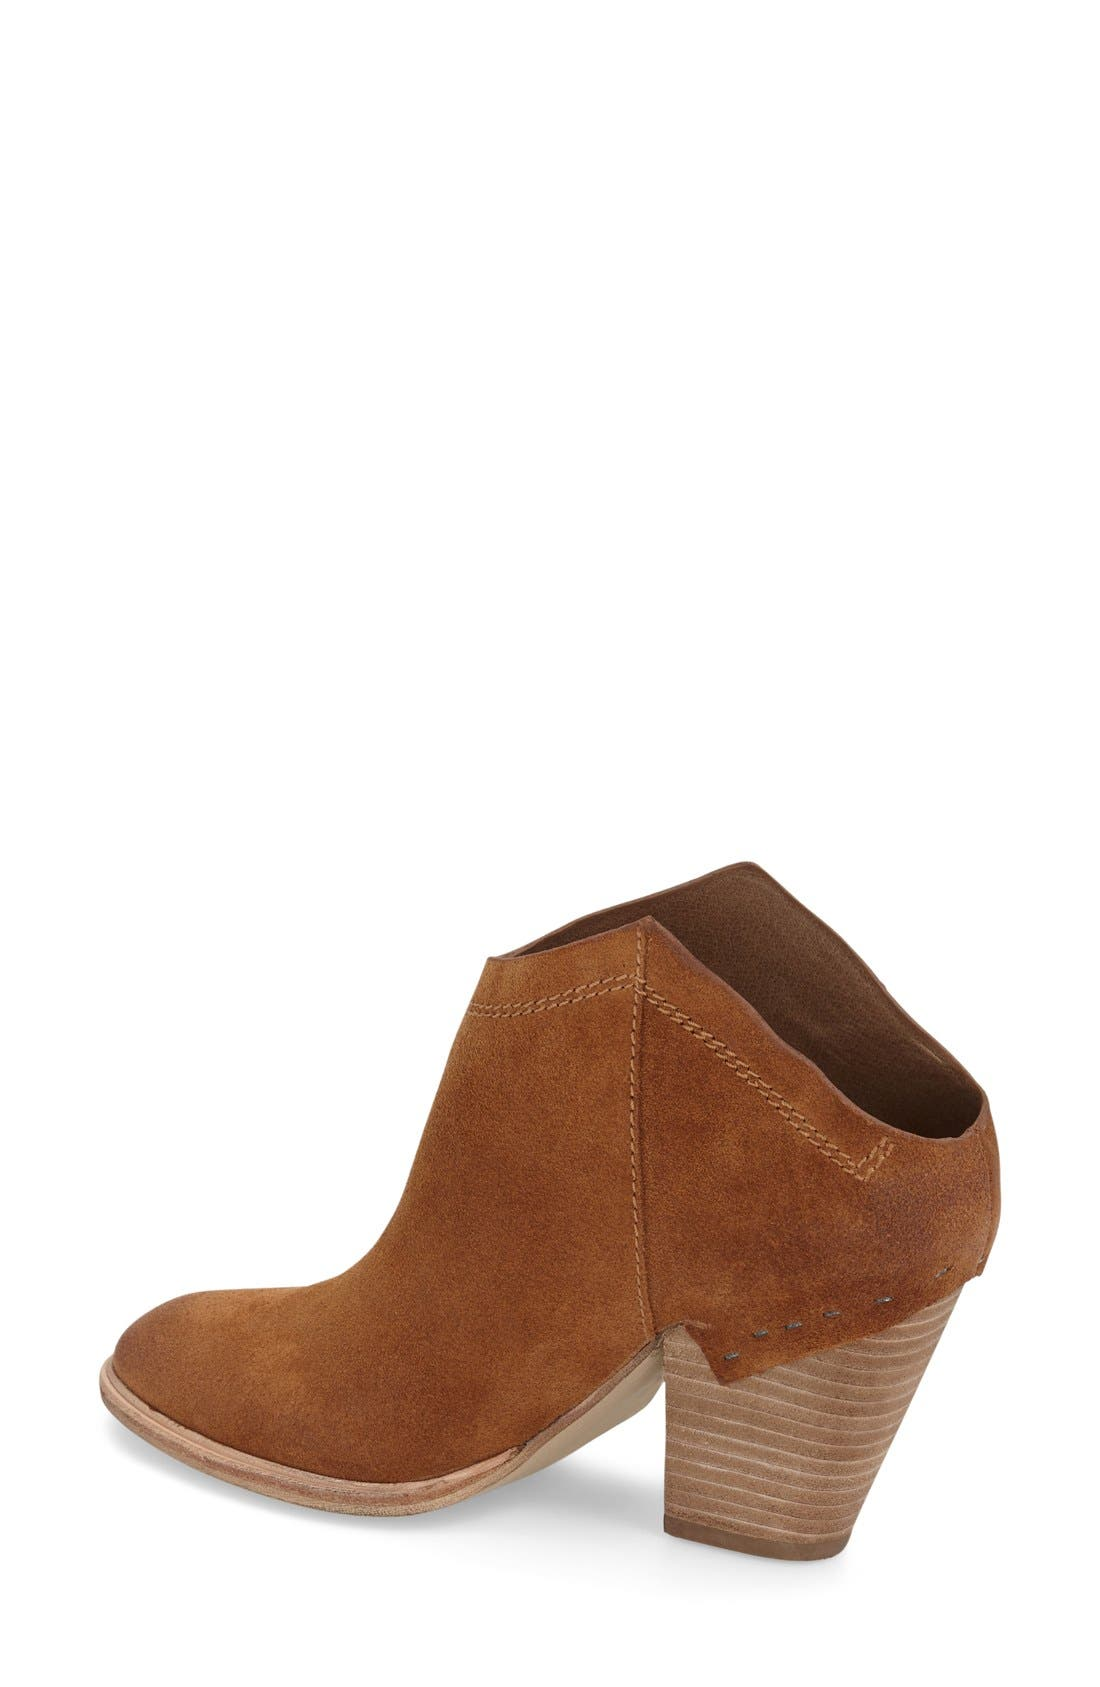 Alternate Image 2  - Dolce Vita 'Haku' Ankle Bootie (Women)